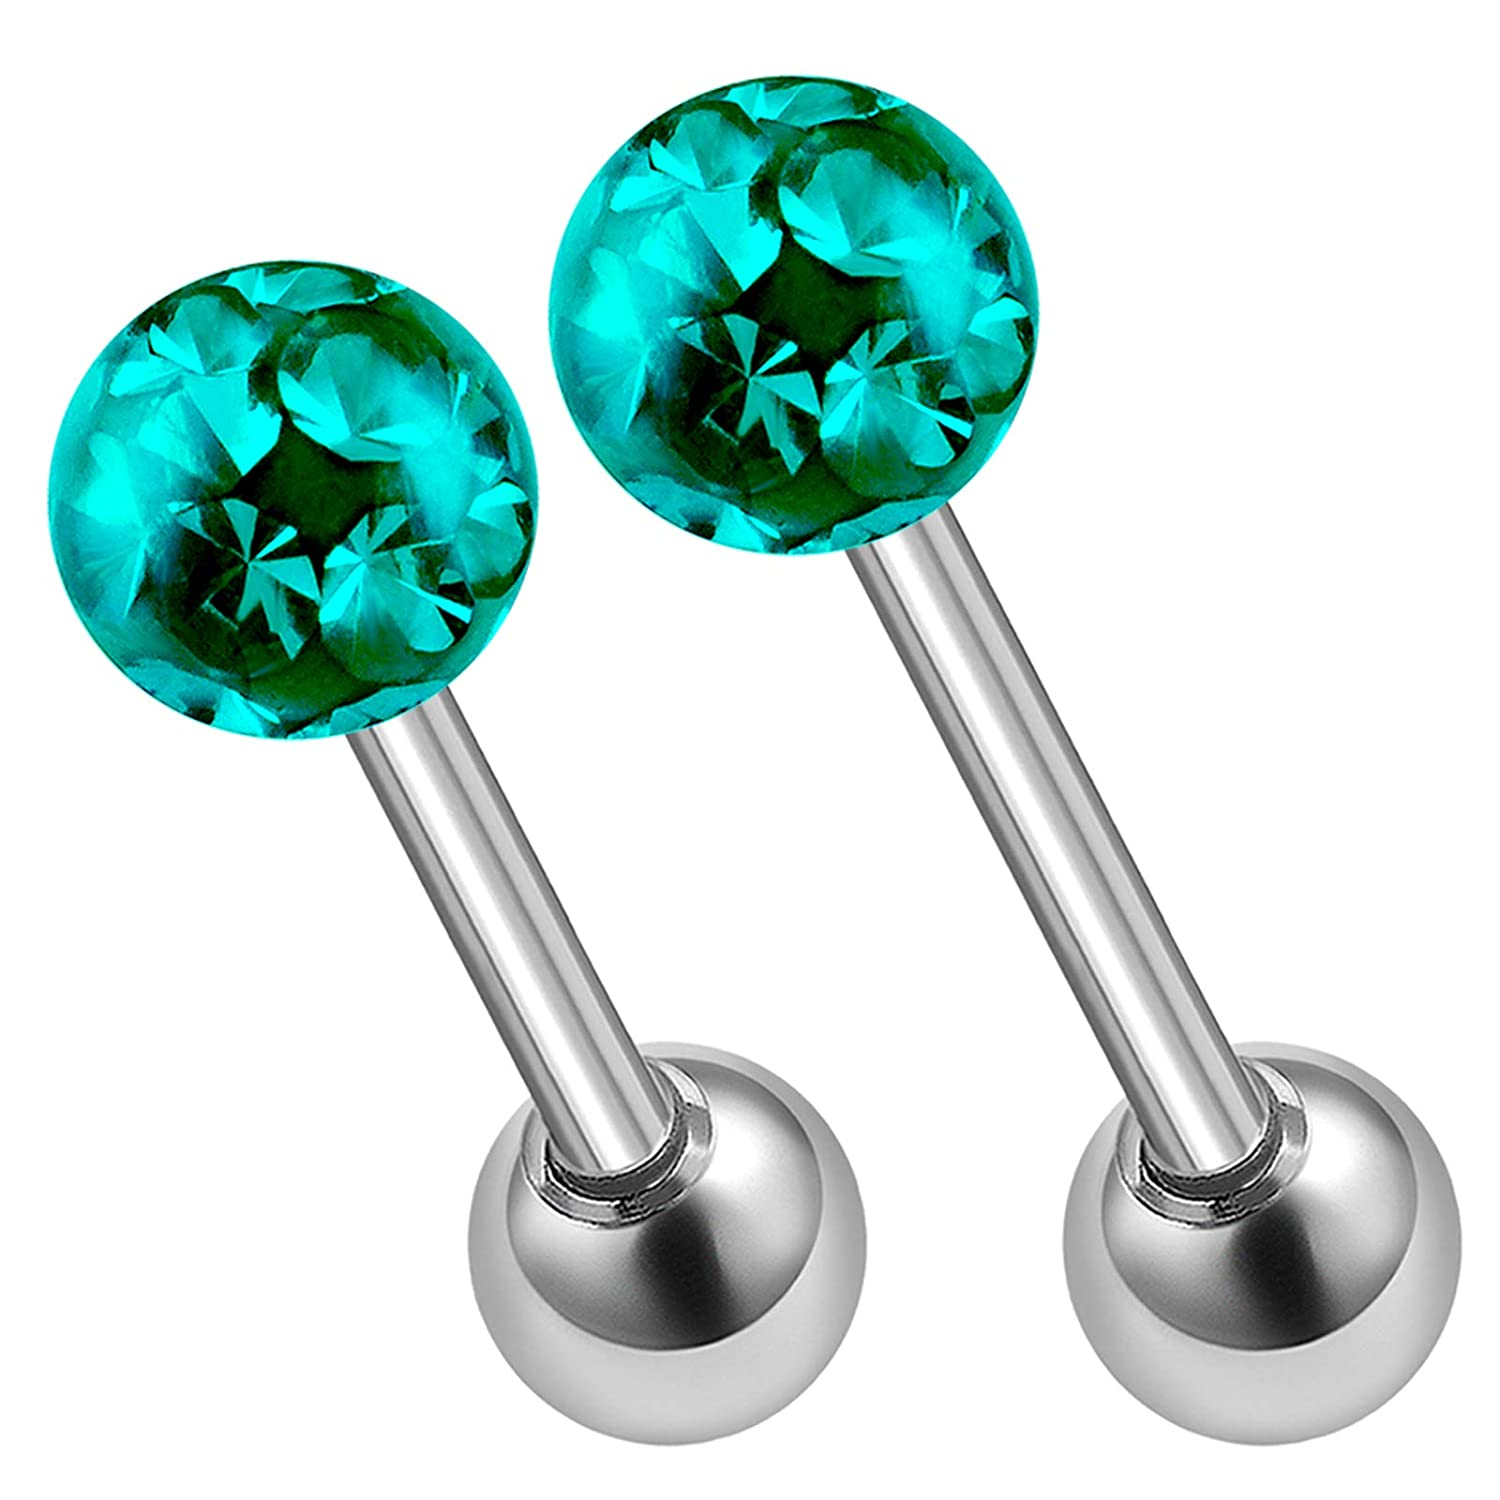 2Pcs Steel 16g 6mm 8mm Tragus Earrings Piercing Jewelry Lip Medusa Spiderbite Nose Cartilage 4mm Crystal Ball More Choices